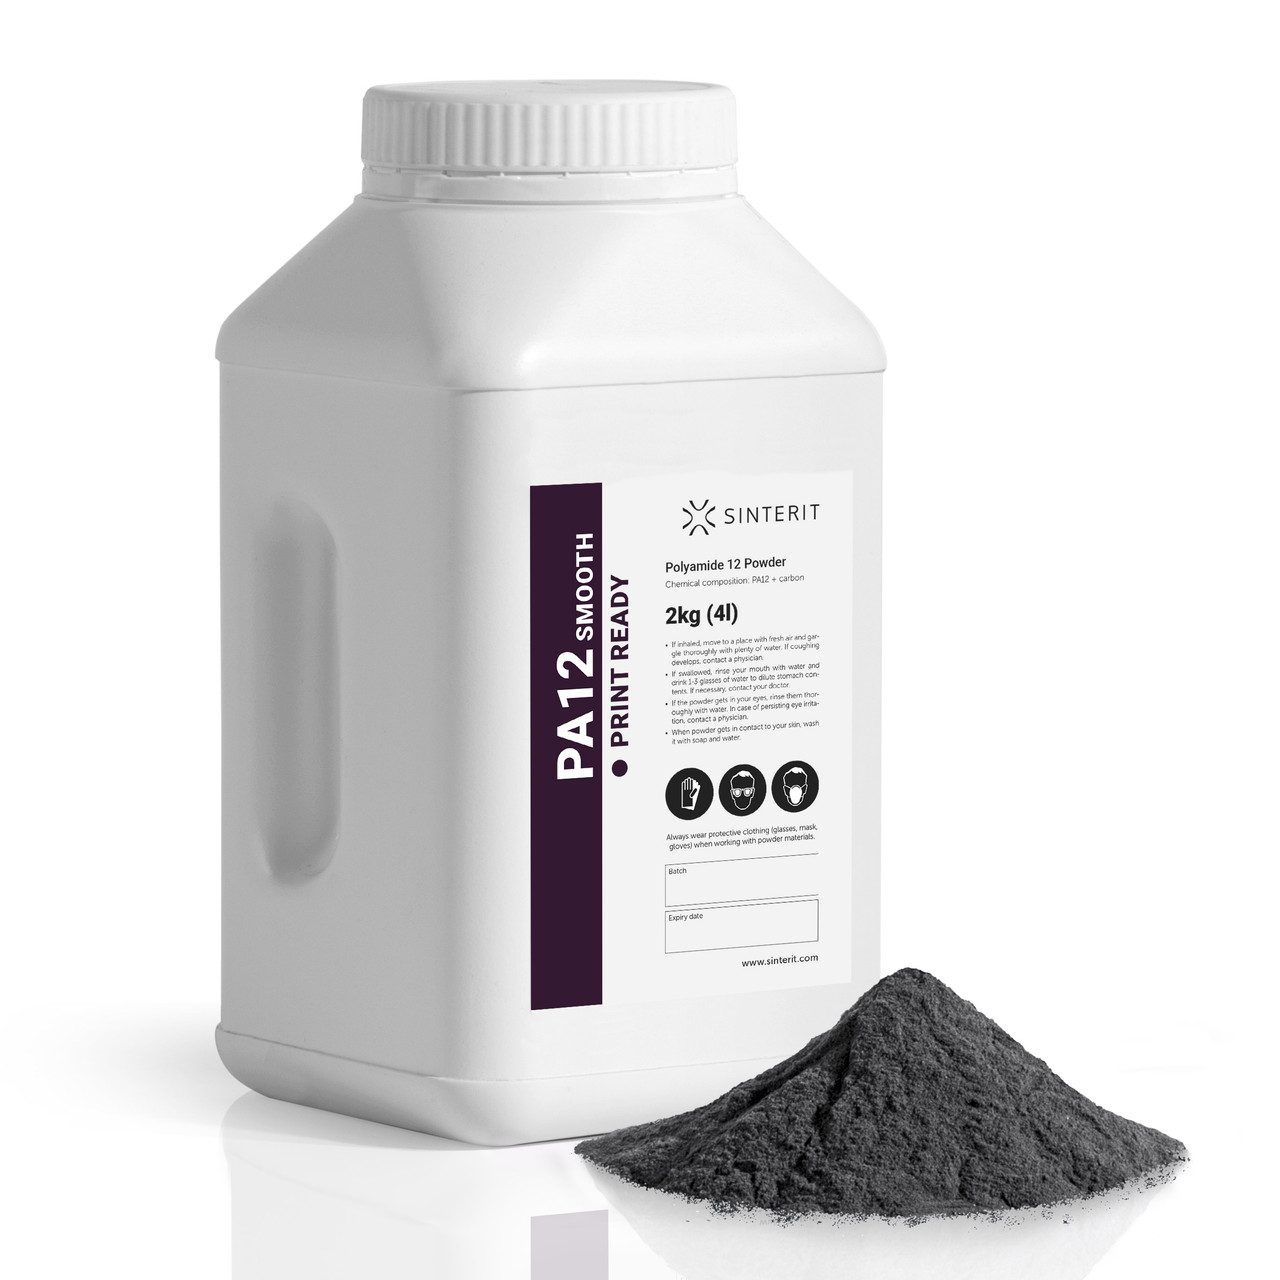 PA12 Print Ready Powder - 2kg (4l) container